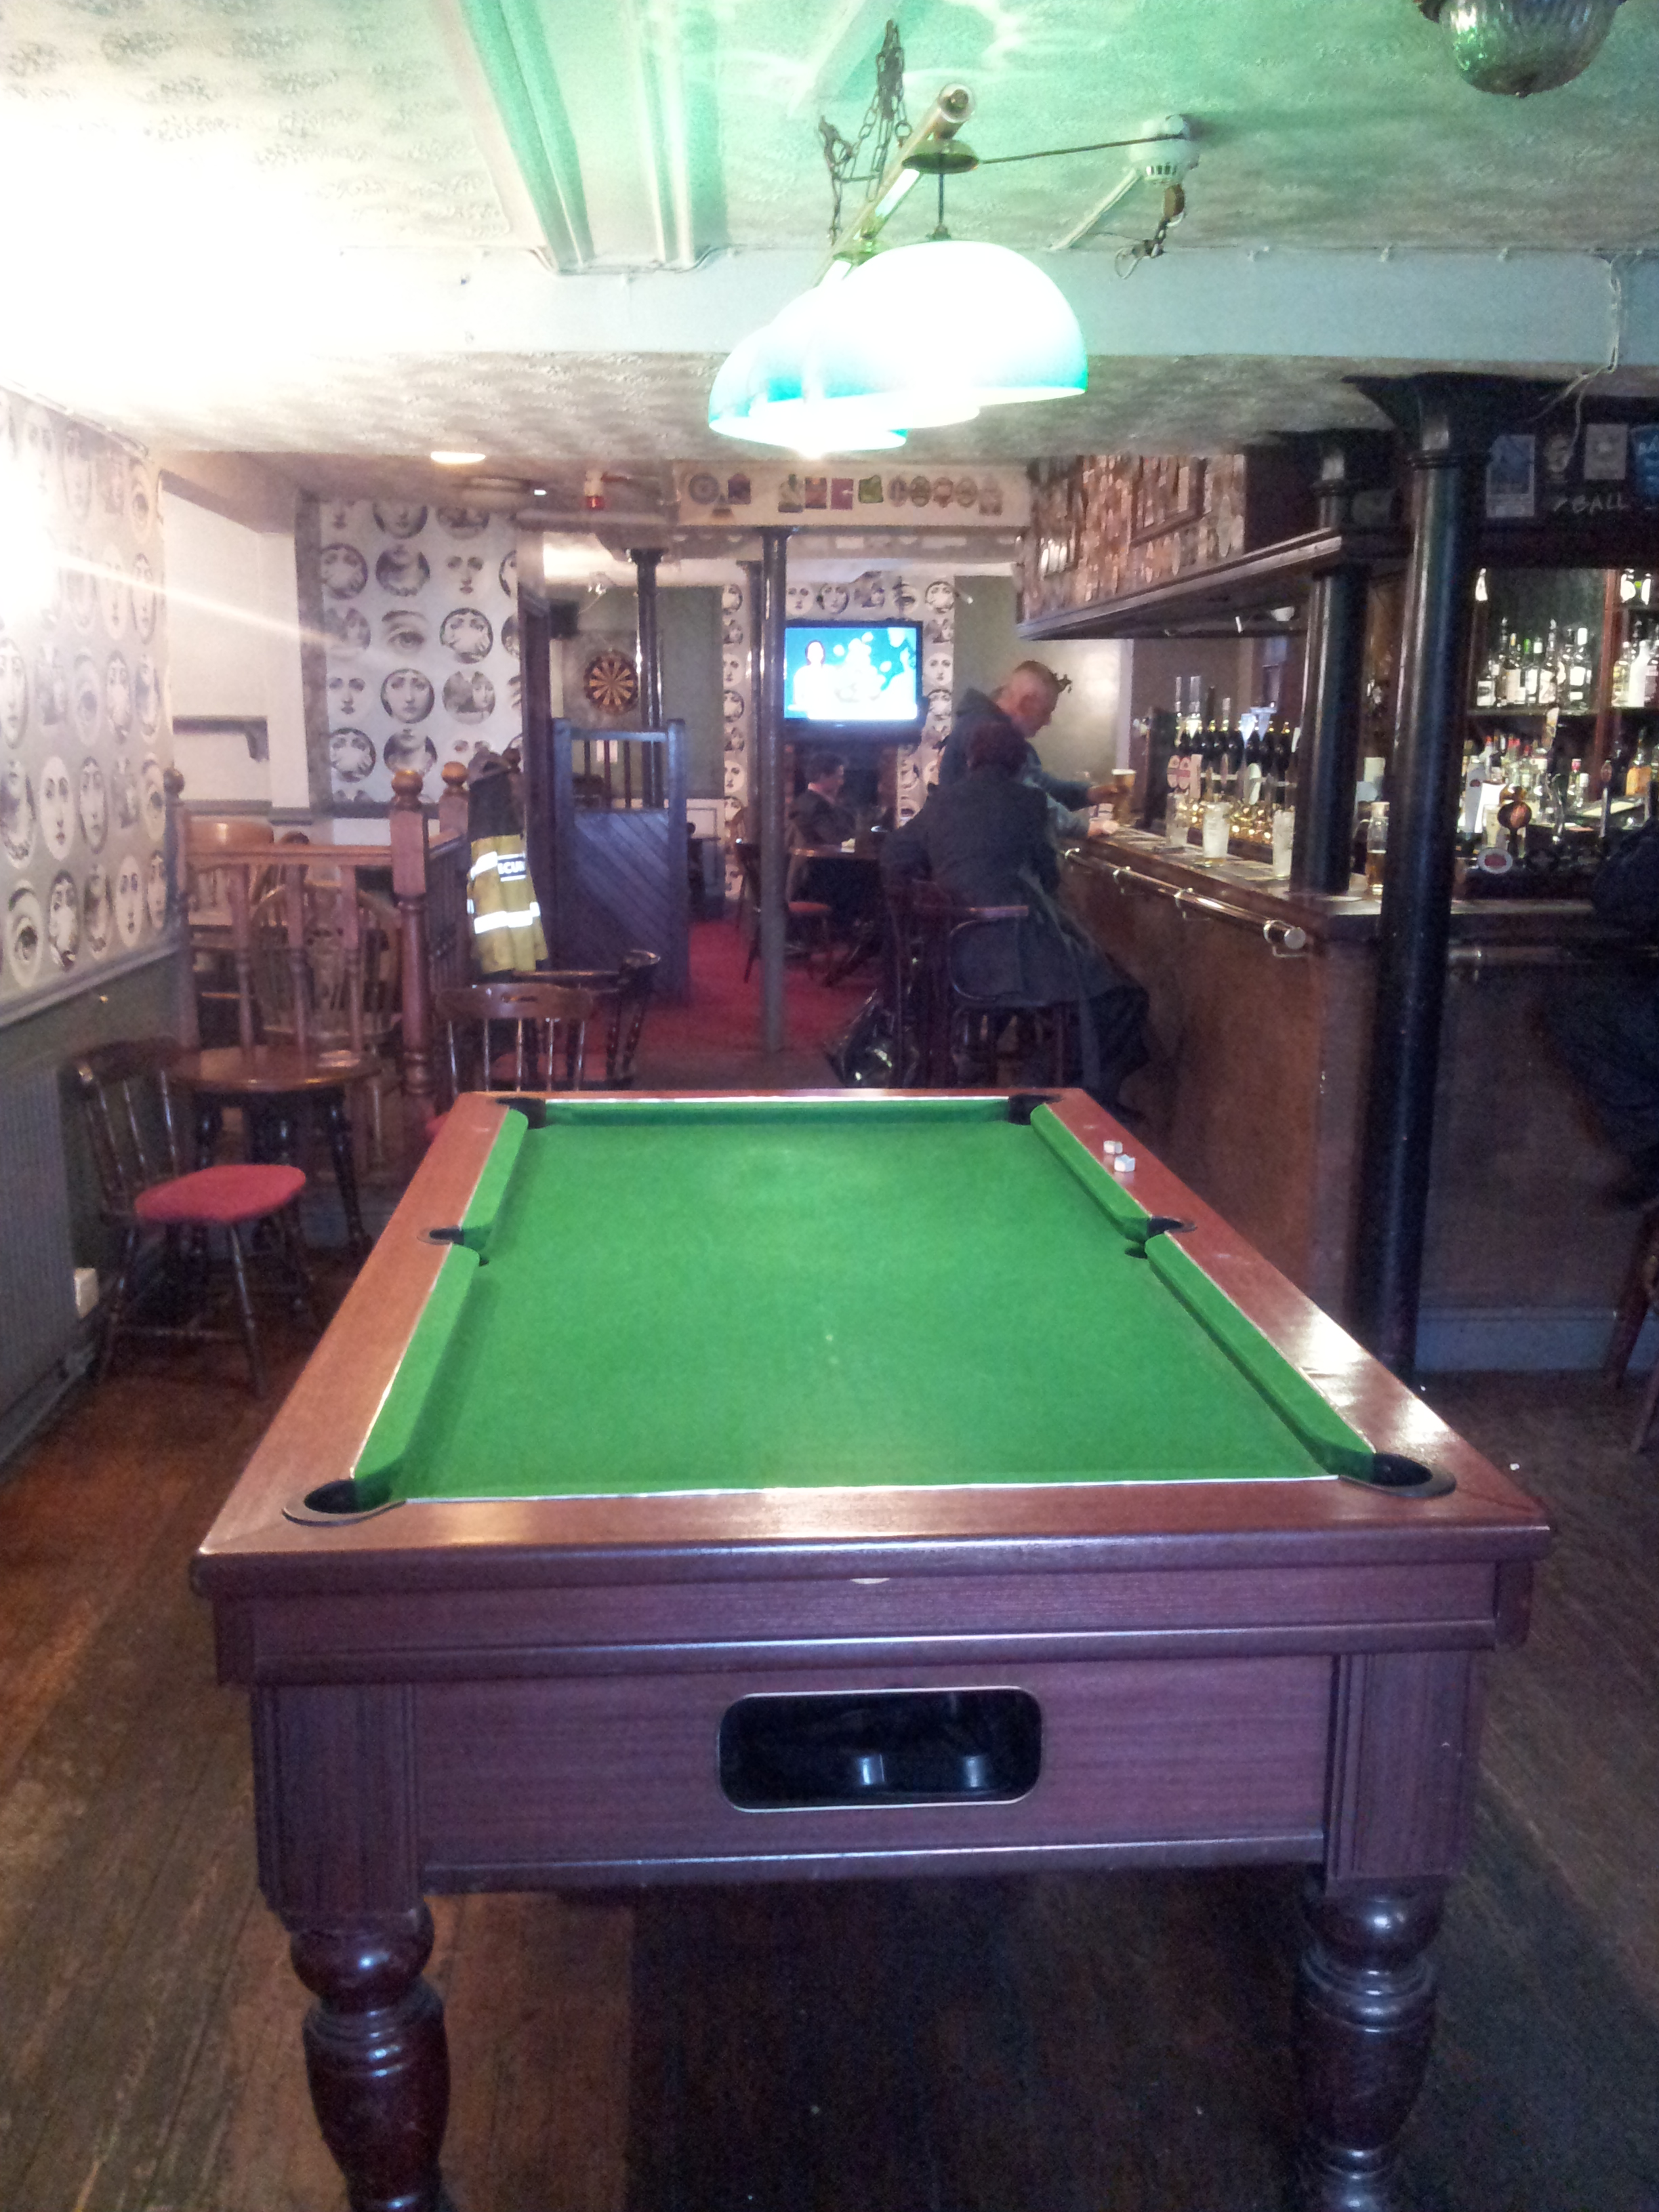 Beer music pubs with jukeboxes pt1 09 05 2013 for 10 in 1 pool table